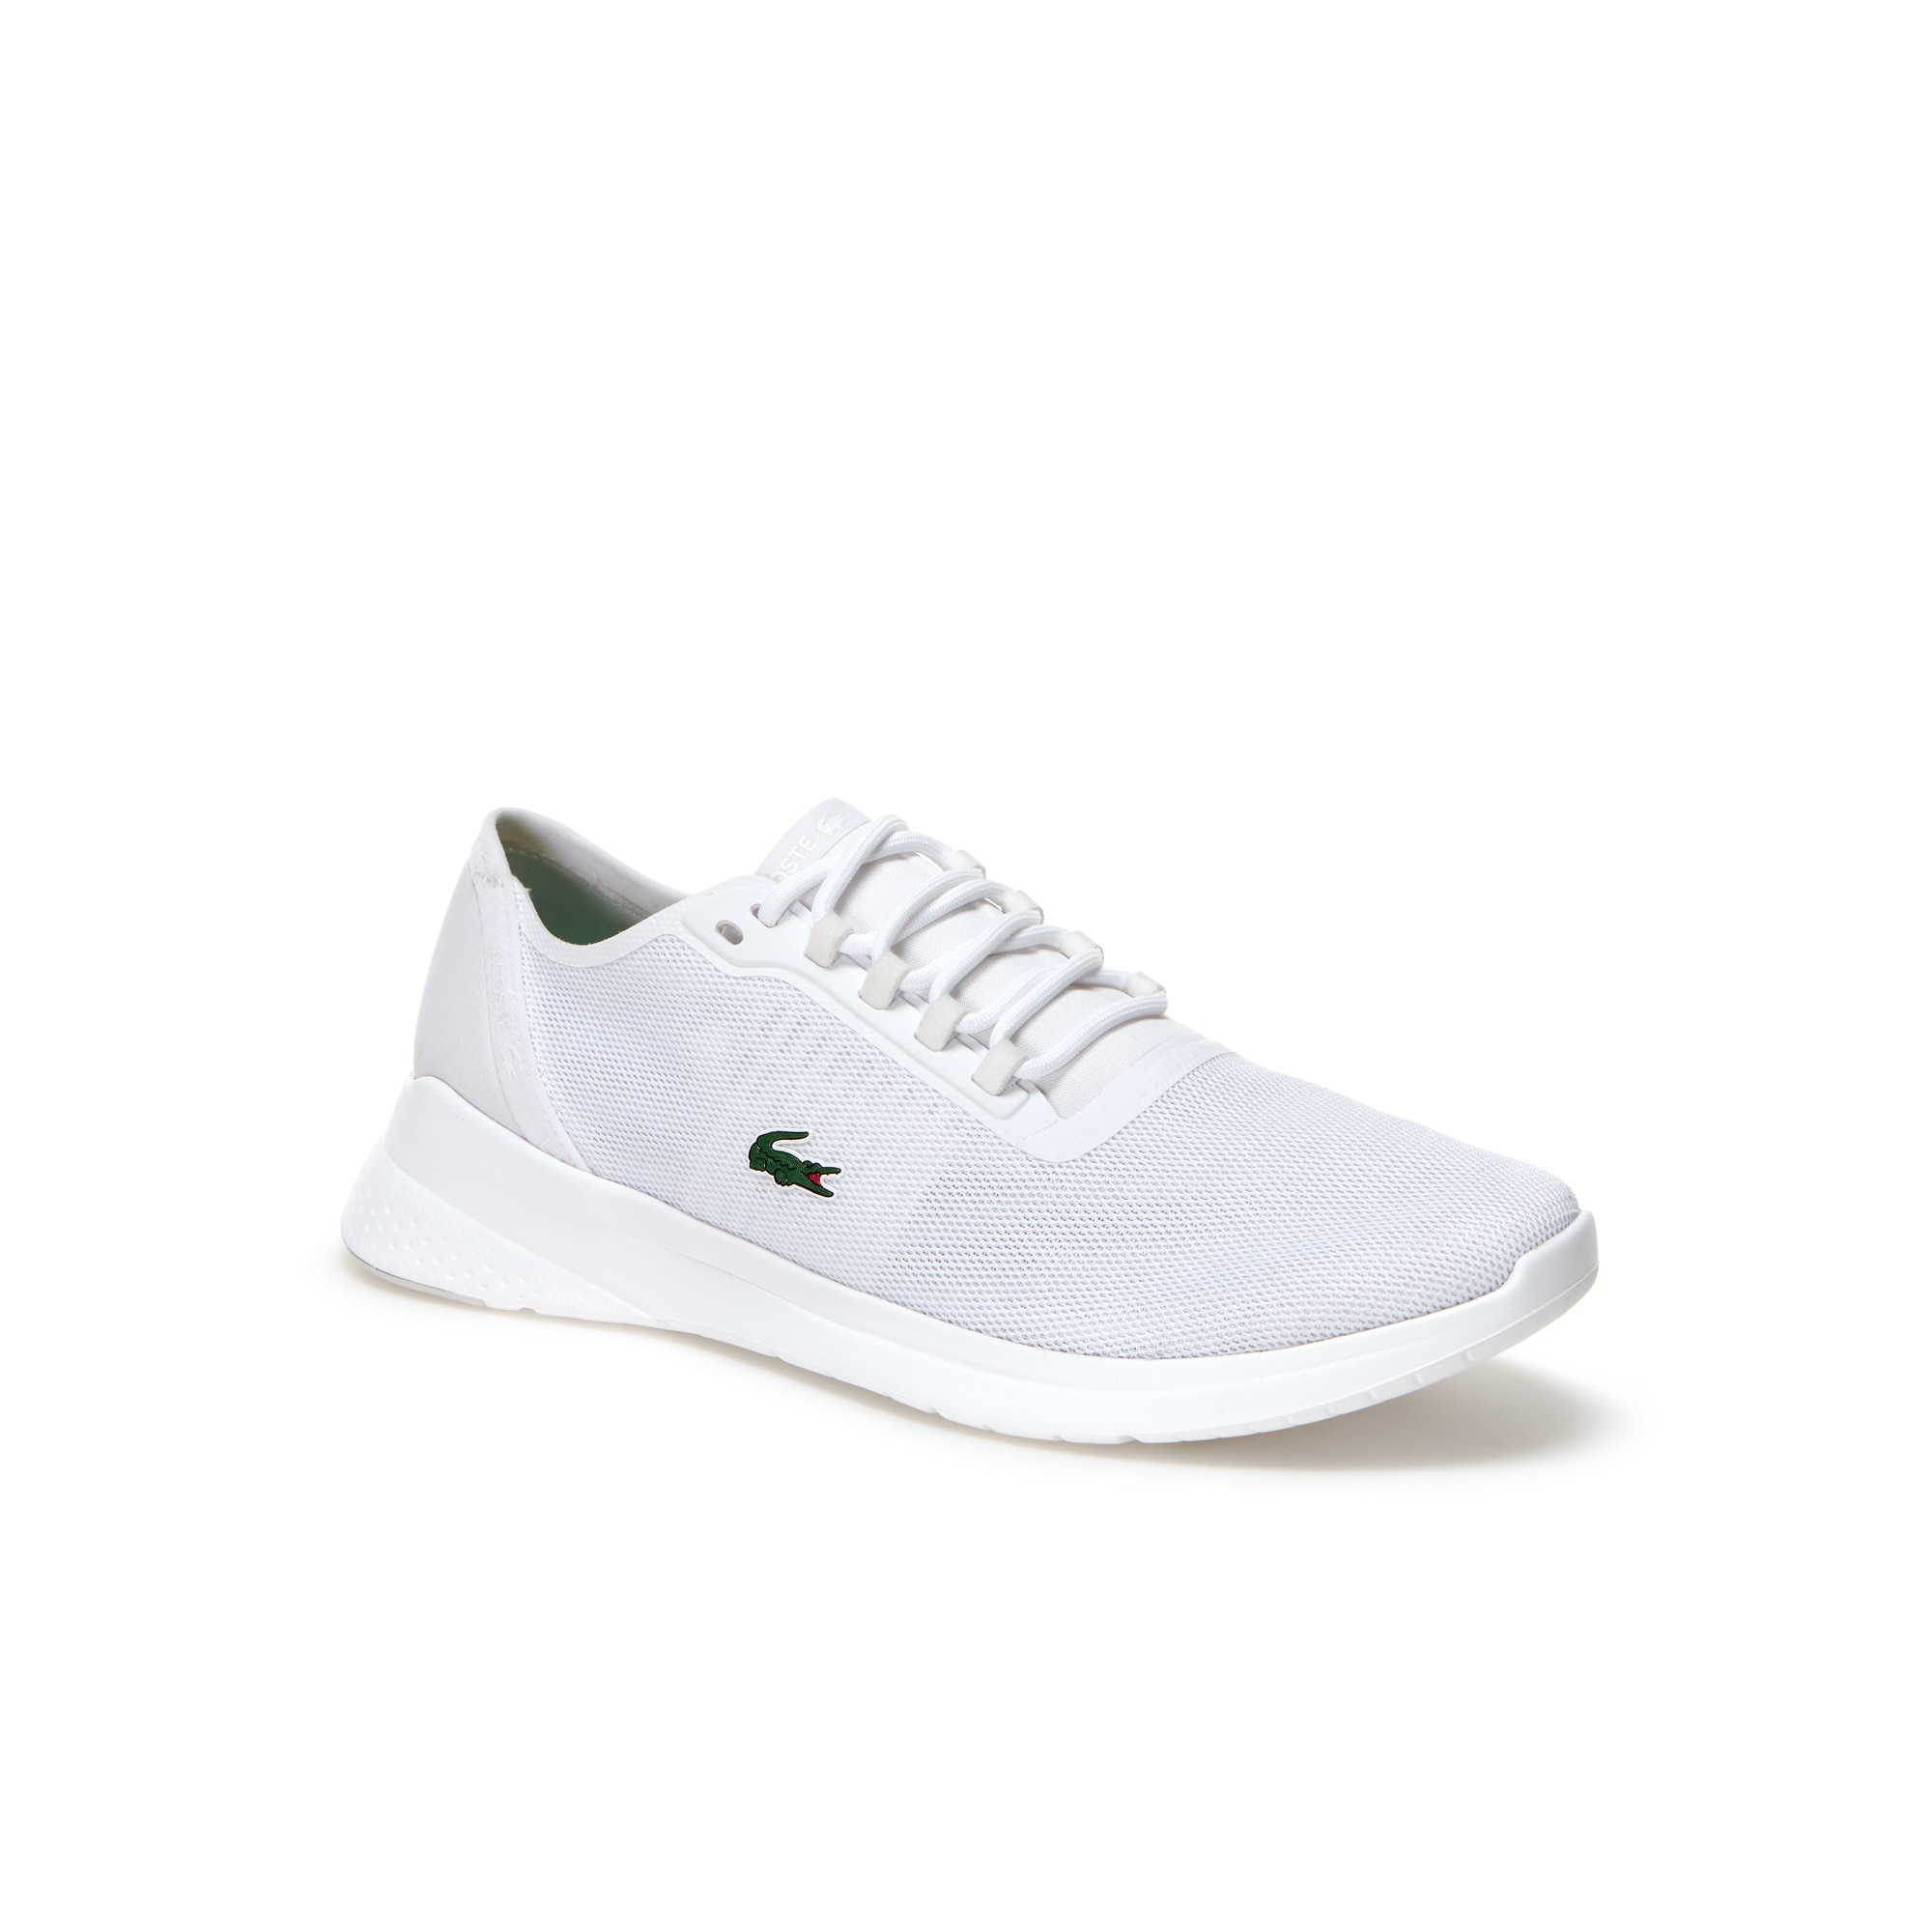 Men's LT Fit Textile Sneakers